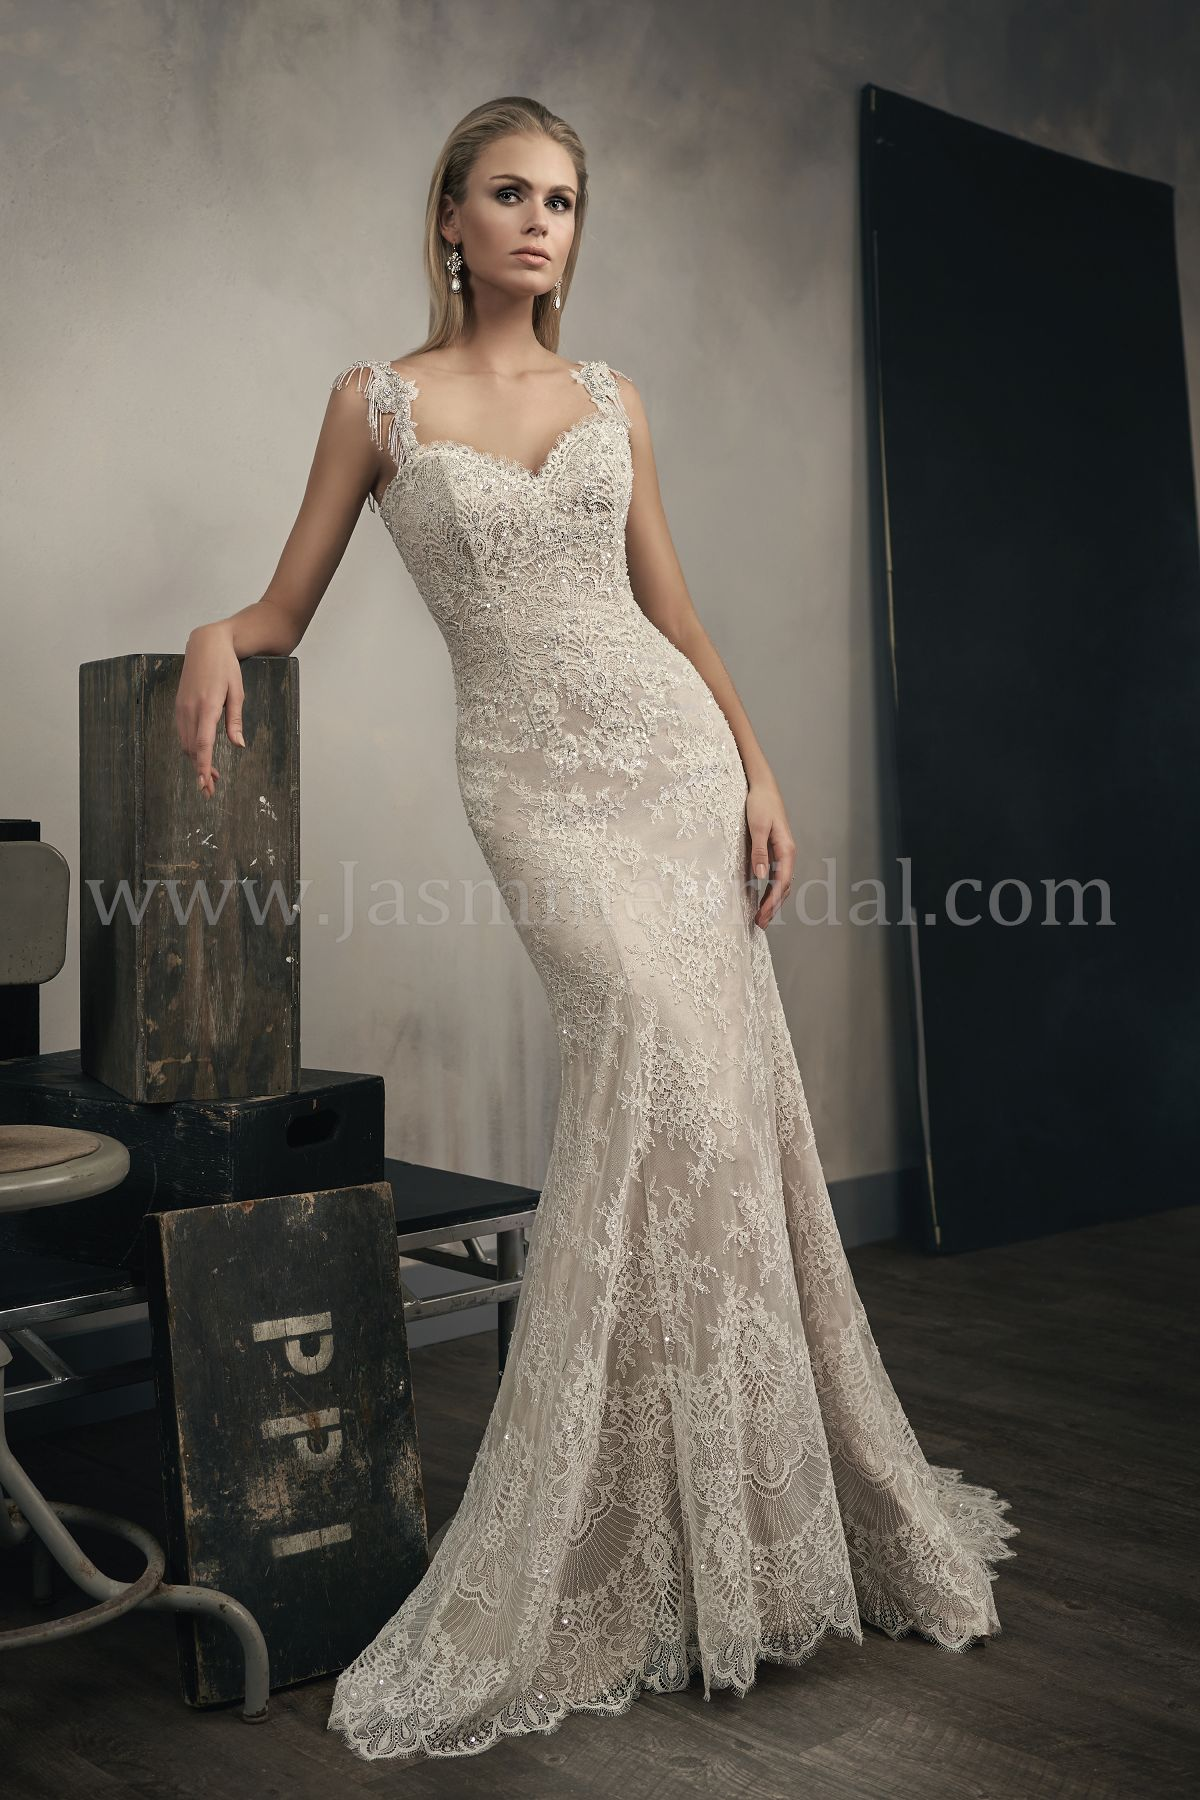 T192051 Sweetheart Neckline Lace Wedding Dress With Beaded Straps